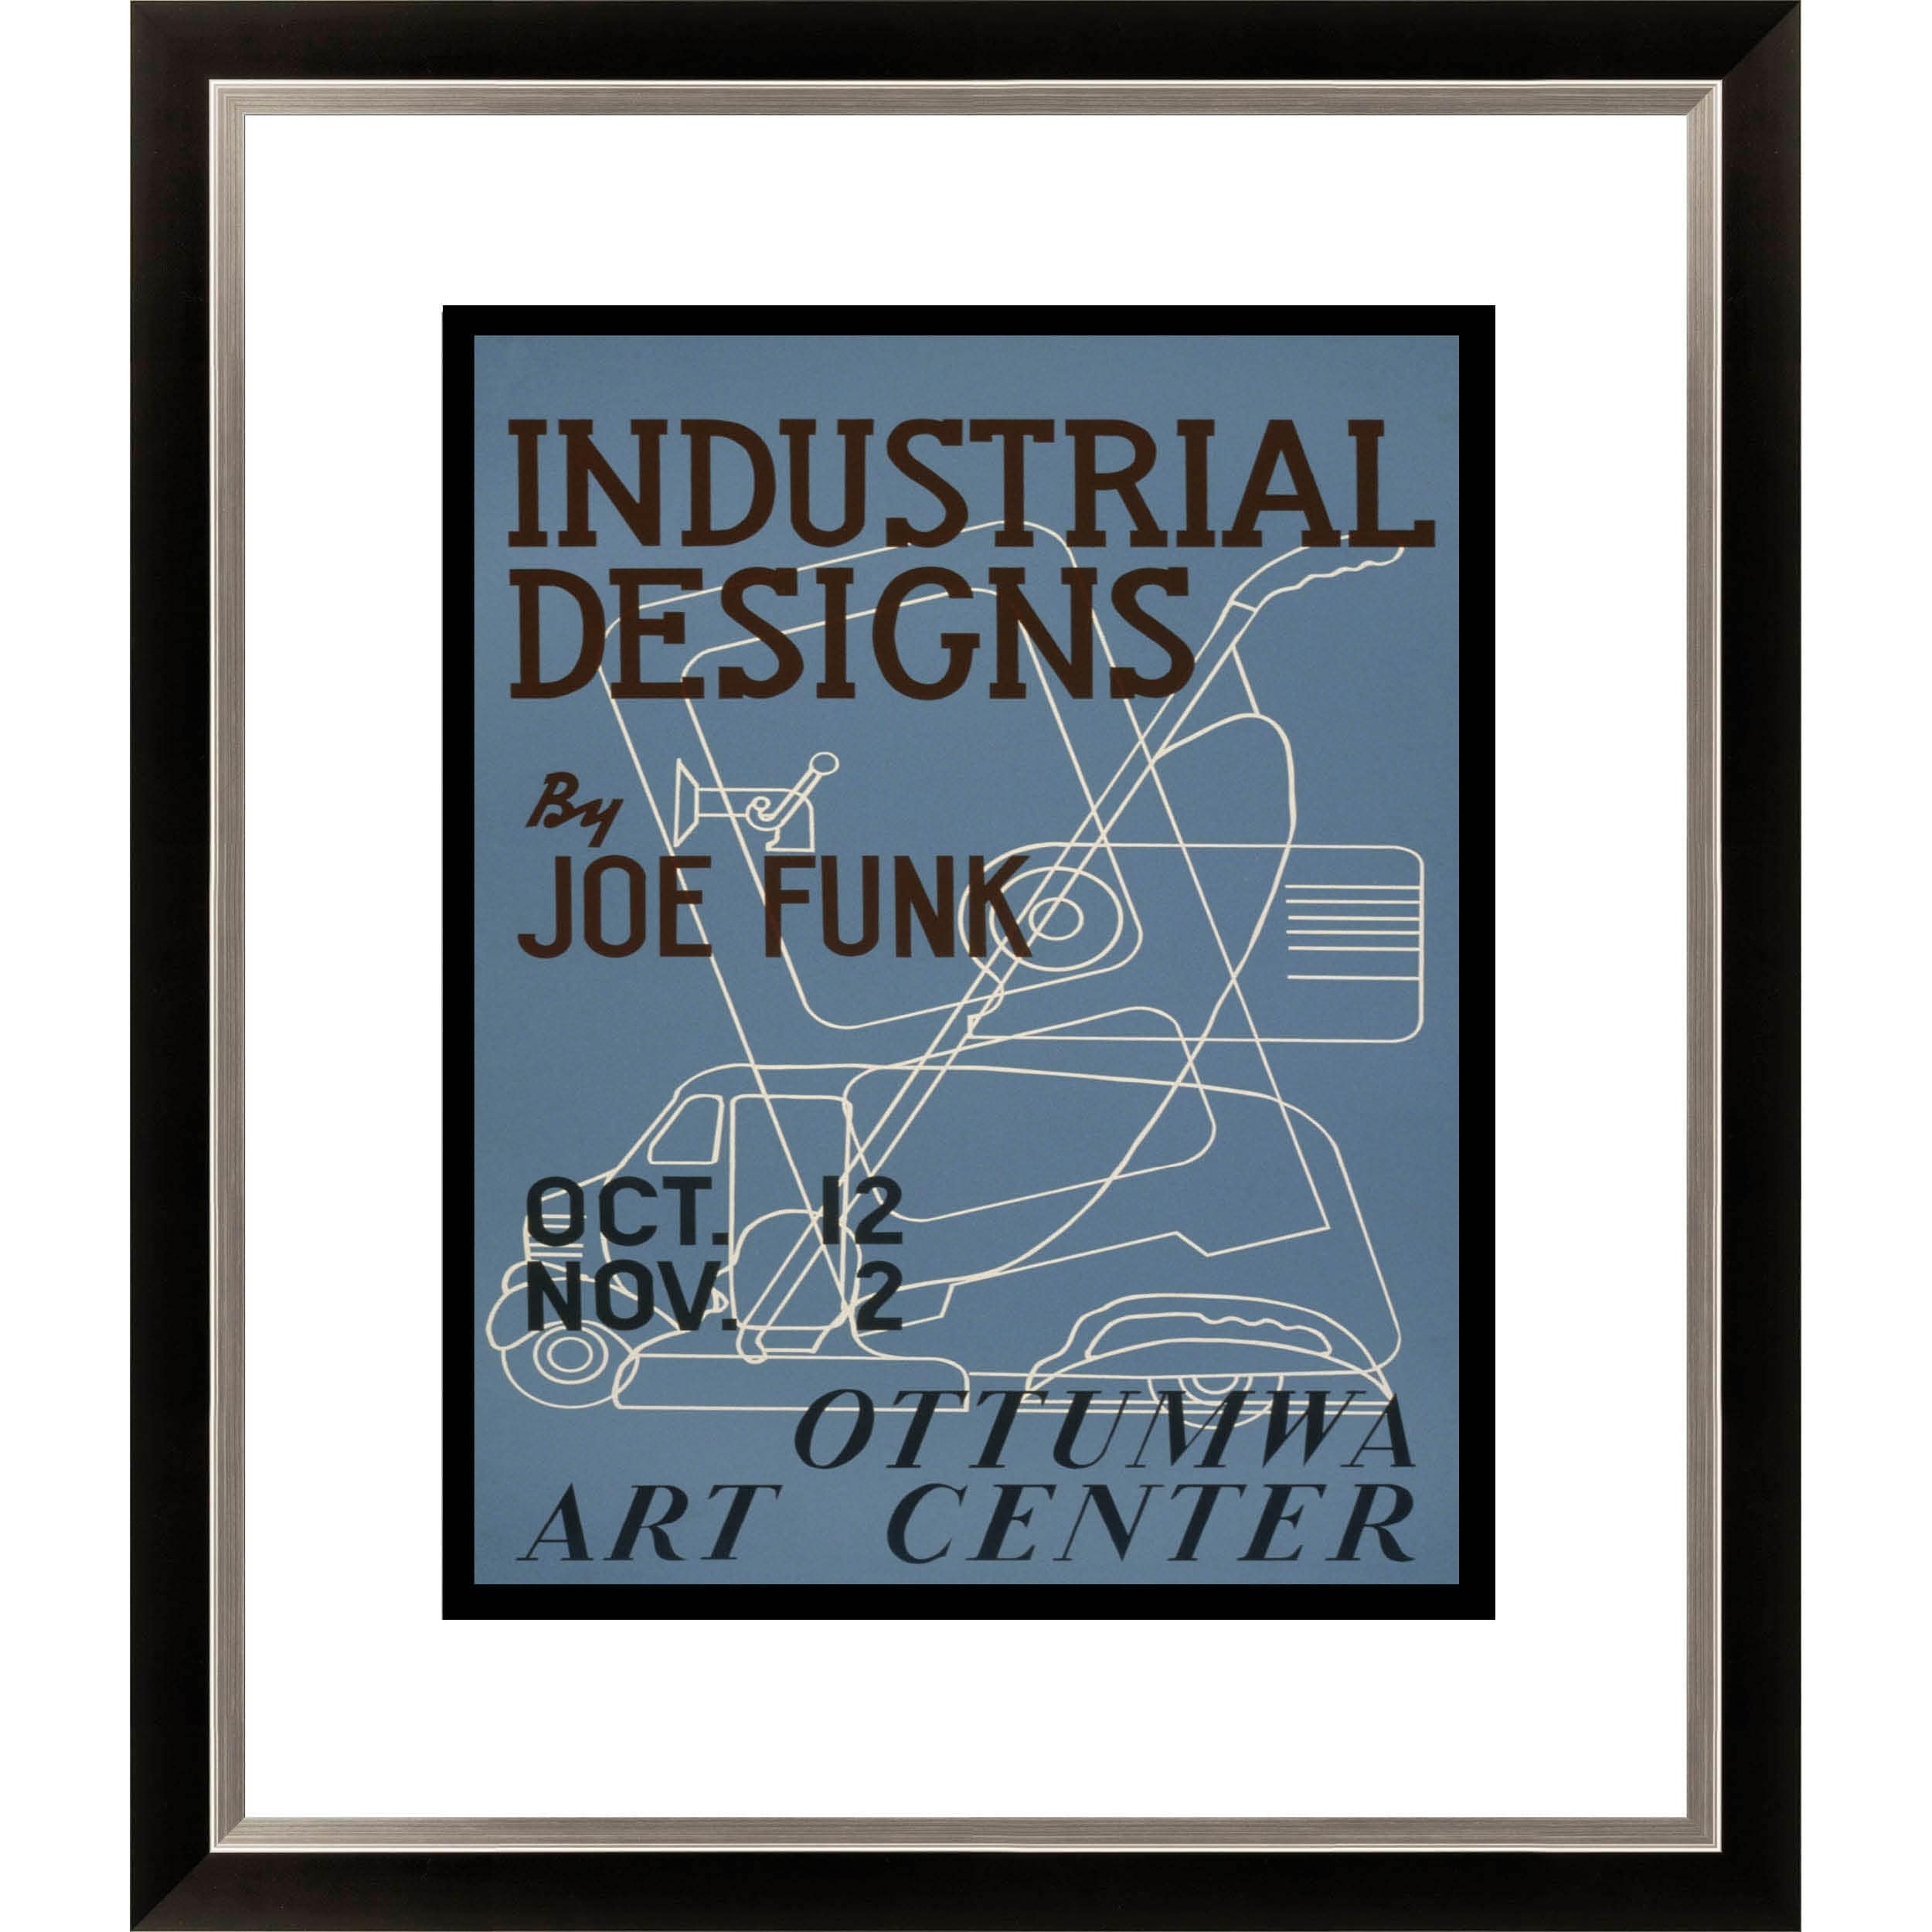 Gallery Direct Joe Funk 'Industrial Designs' Ottumwa Art Center Framed Limited Edition Giclee Art